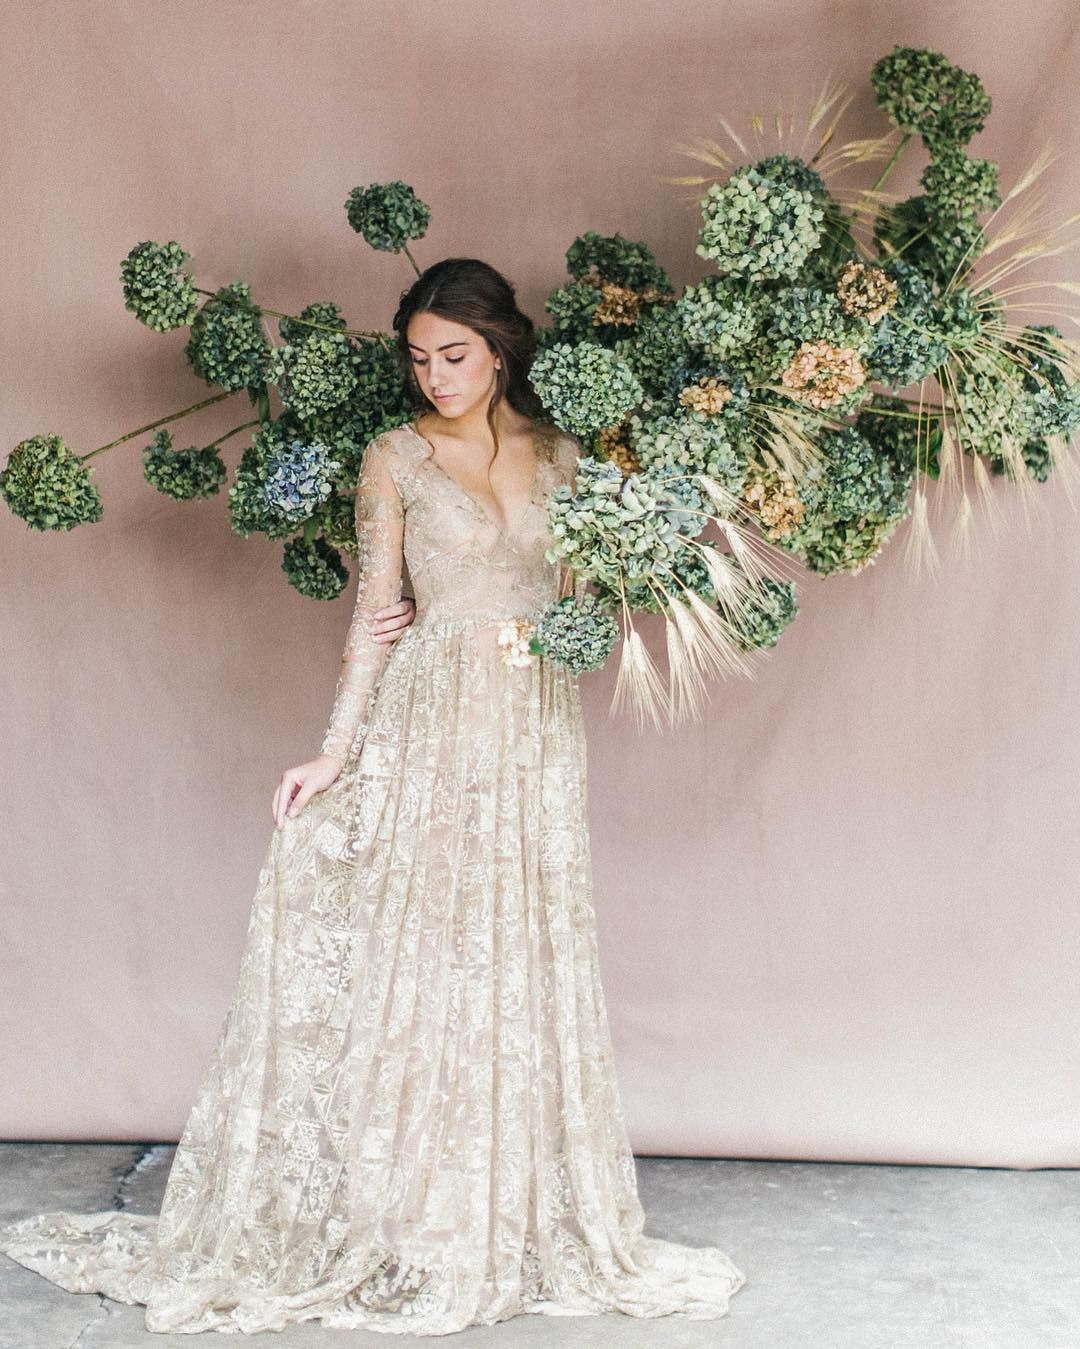 White Wedding Gown Hydrangea: Dried Hydrangea Install By @hart_floral 😍 Photograph In